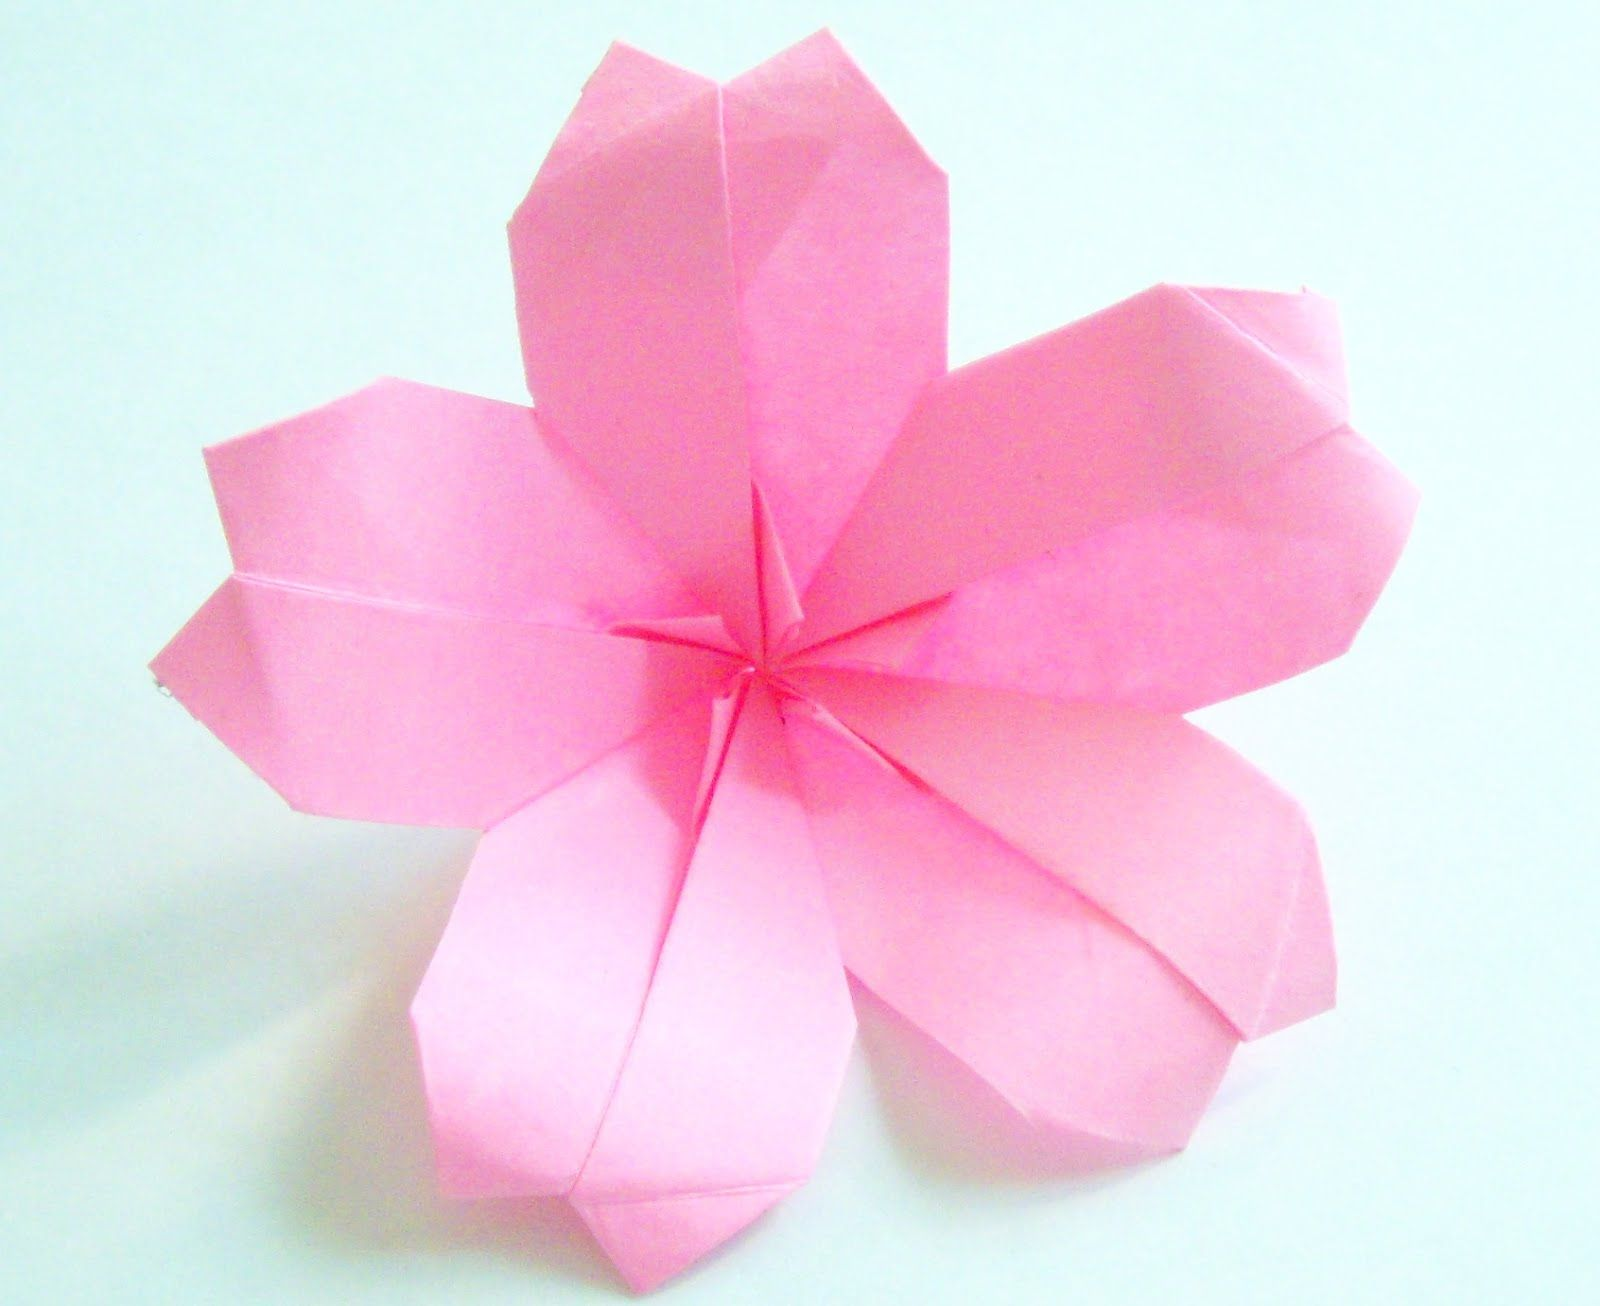 ORIGAMI | Origami: Origami Cherry Blossom | Paper craft ... - photo#12